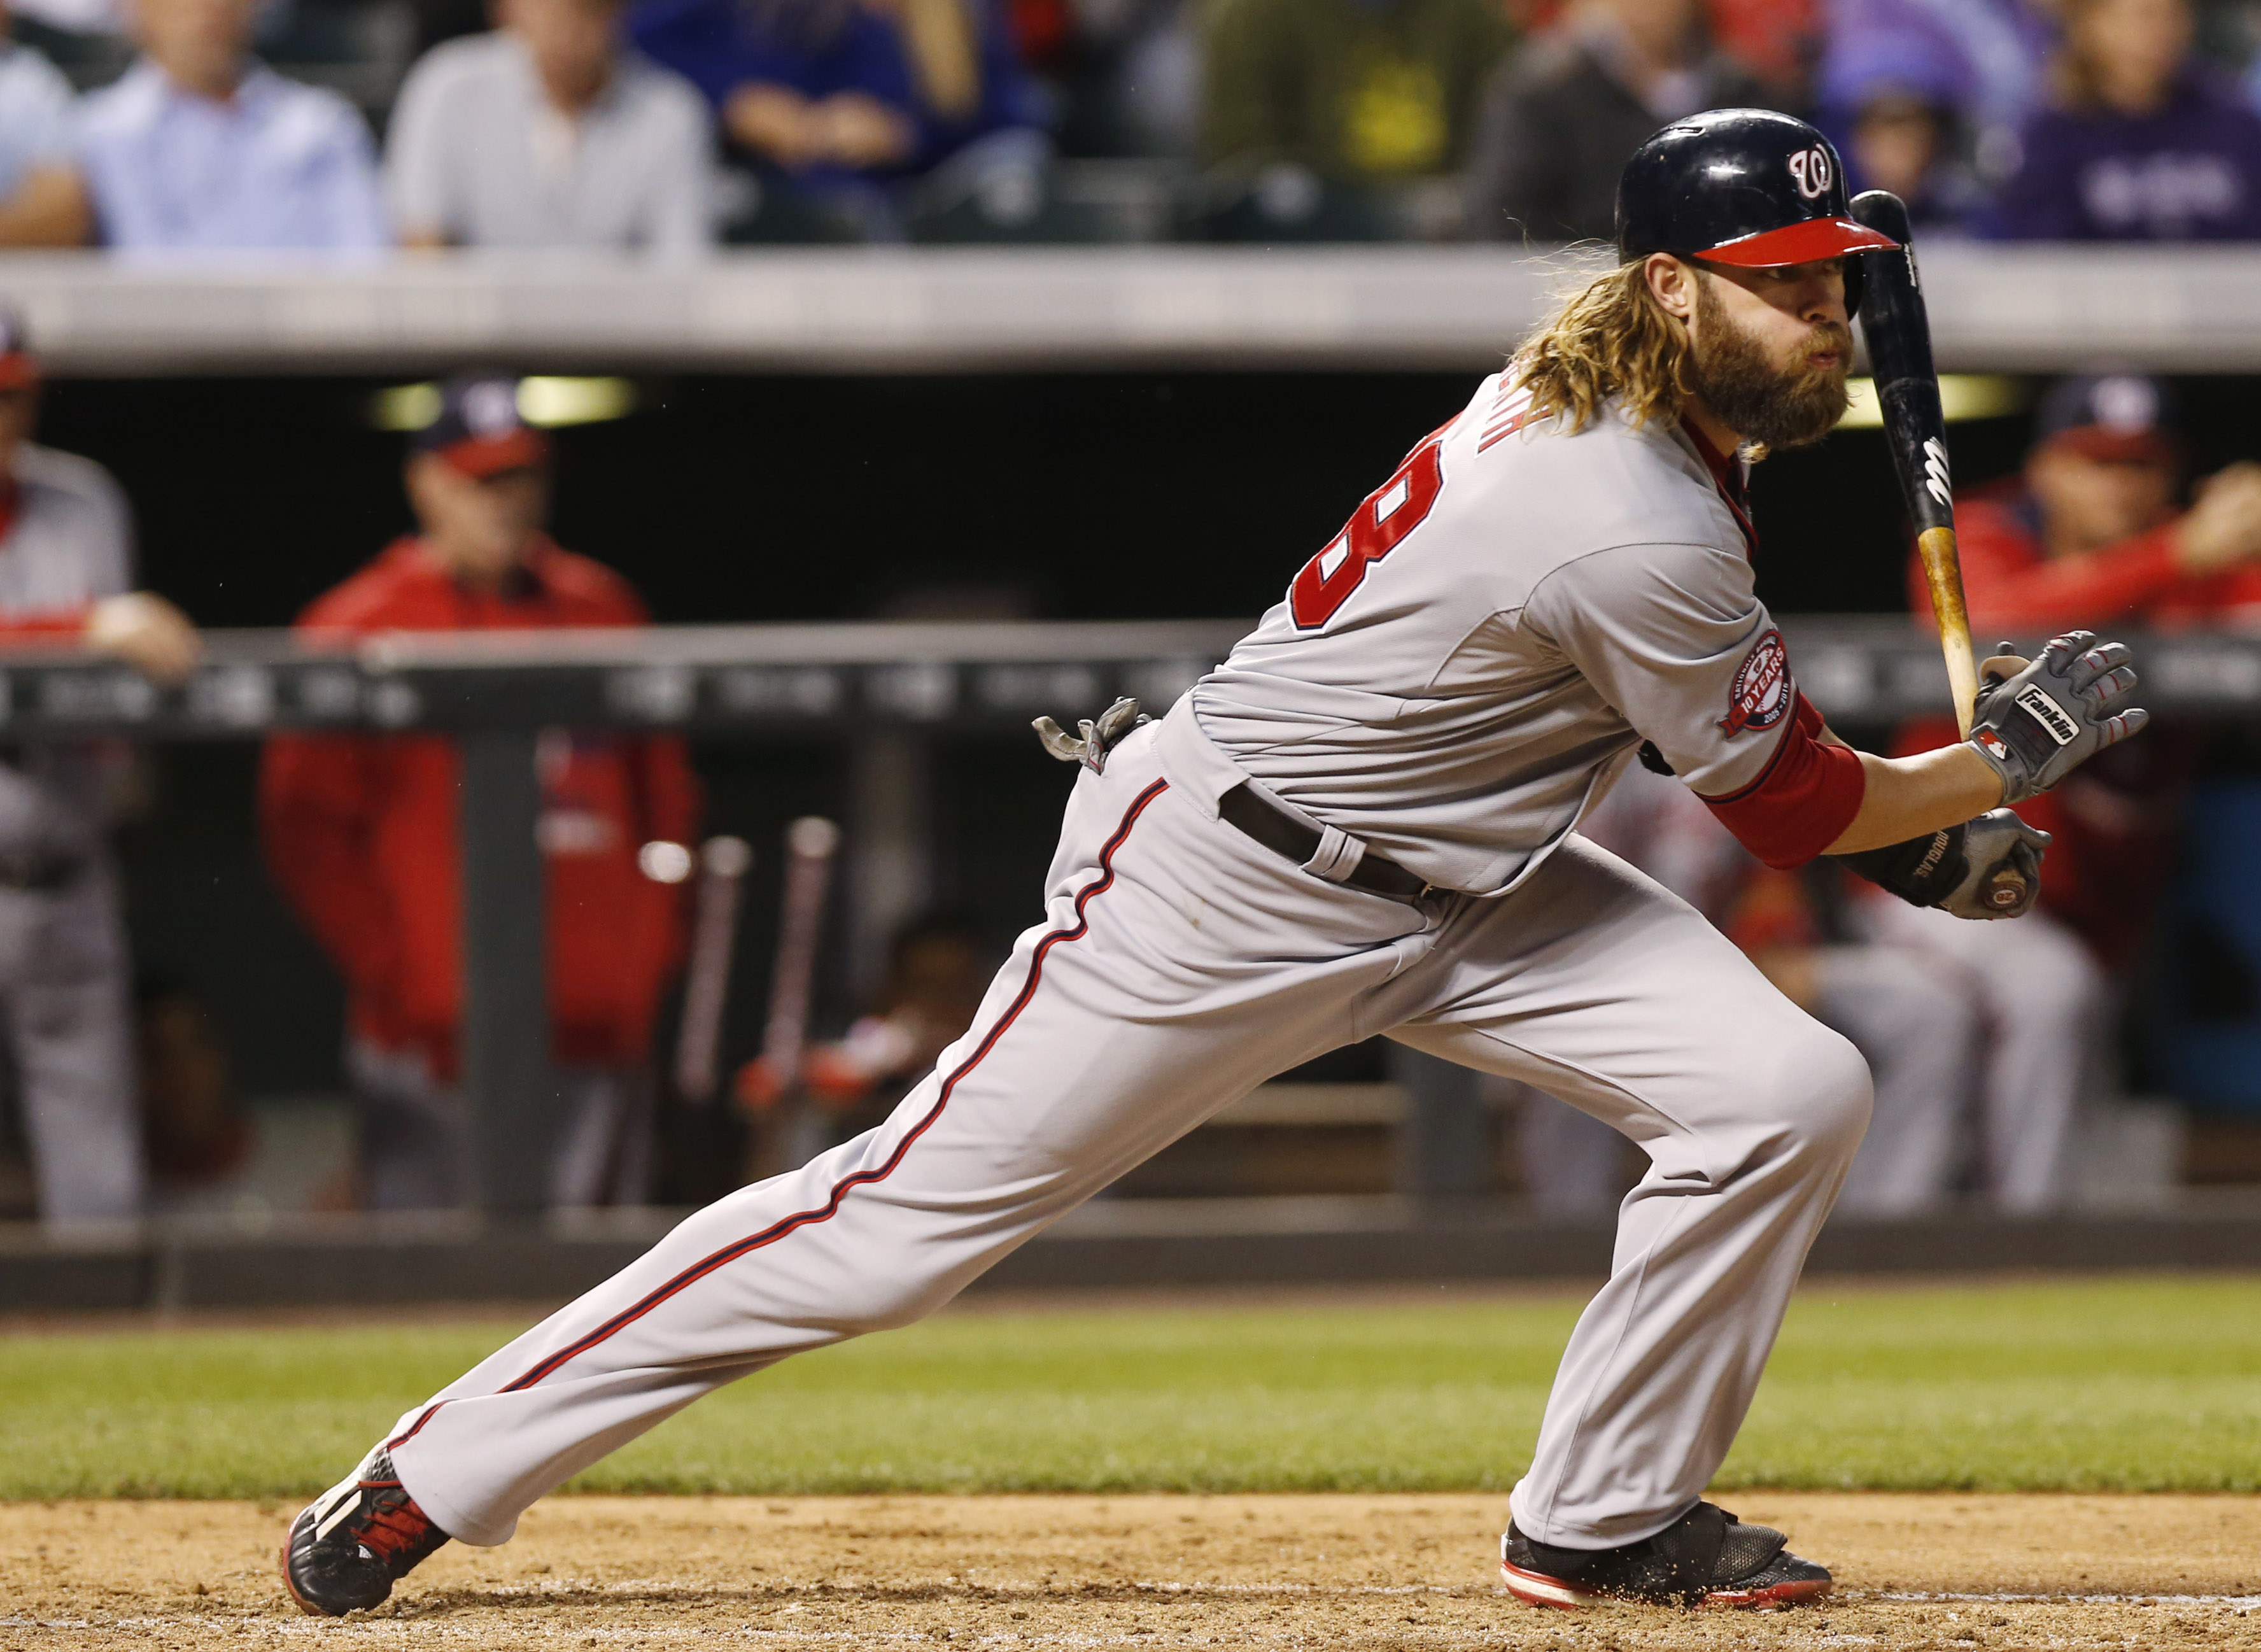 Washington Nationals' Jayson Werth singles off Colorado Rockies starting pitcher David Hale duirng the fourth inning of a baseball game Tuesday, Aug. 18, 2015, in Denver. (AP Photo/David Zalubowski)